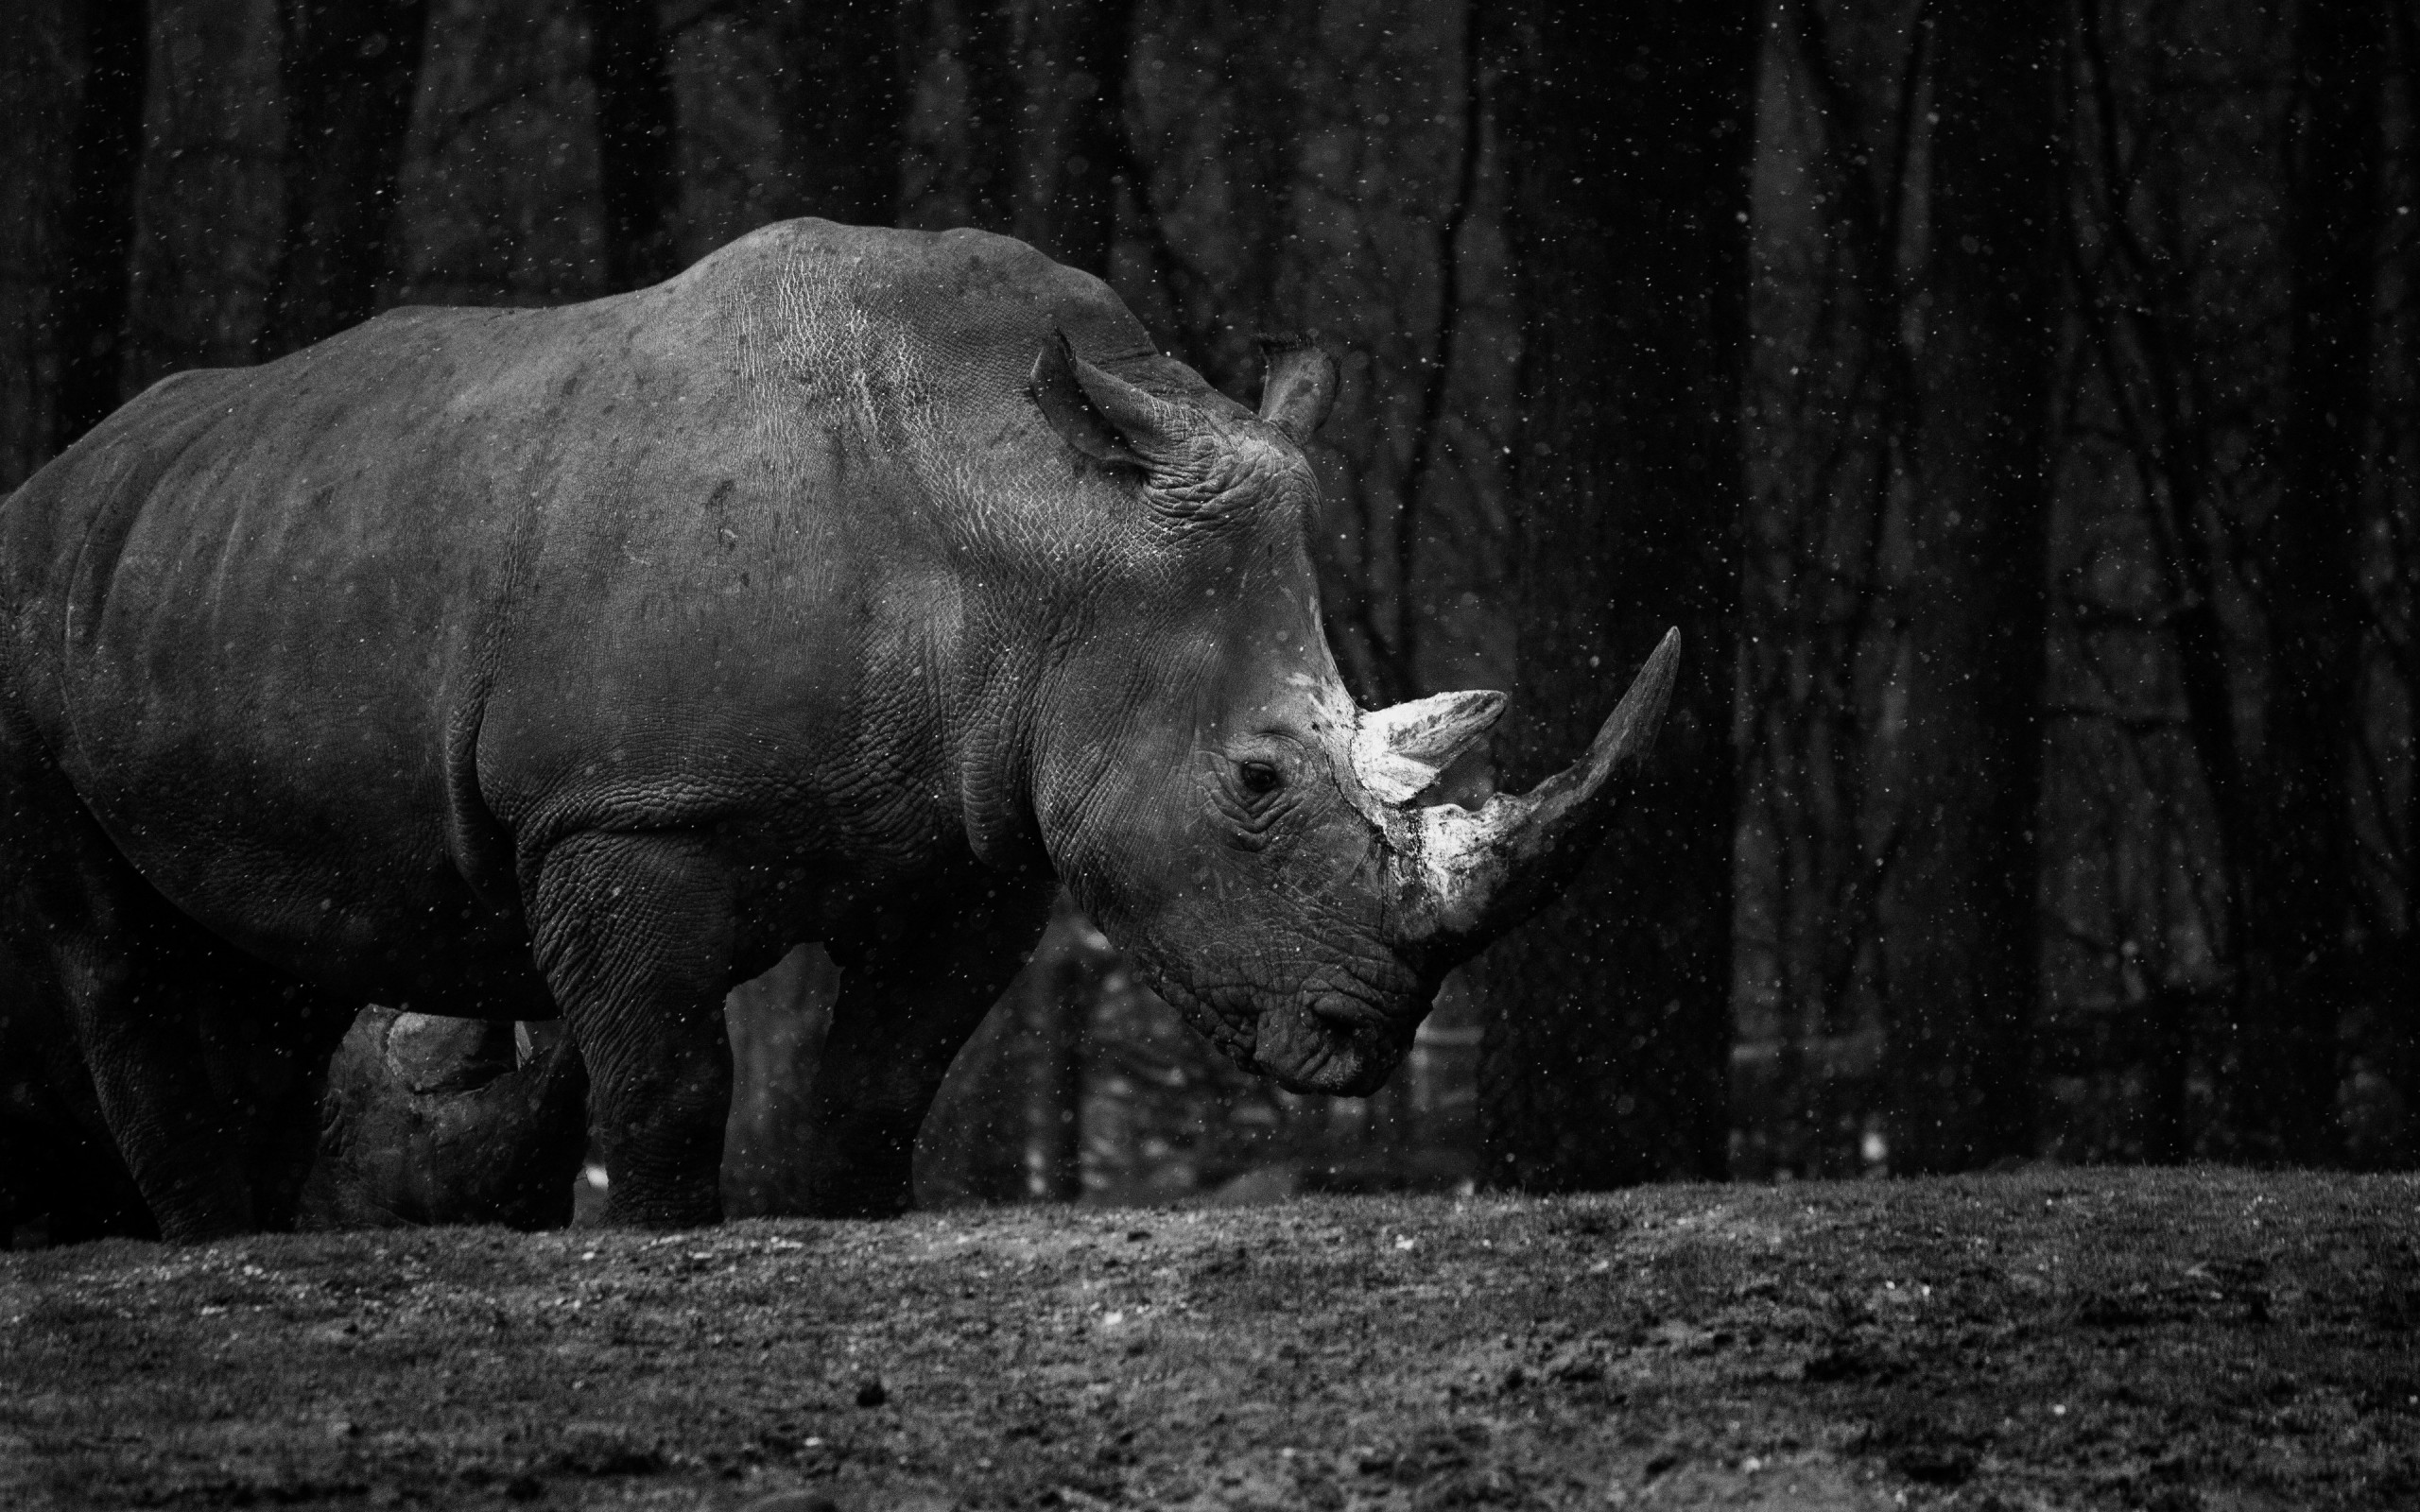 Rhino at zoo wallpaper 2560x1600